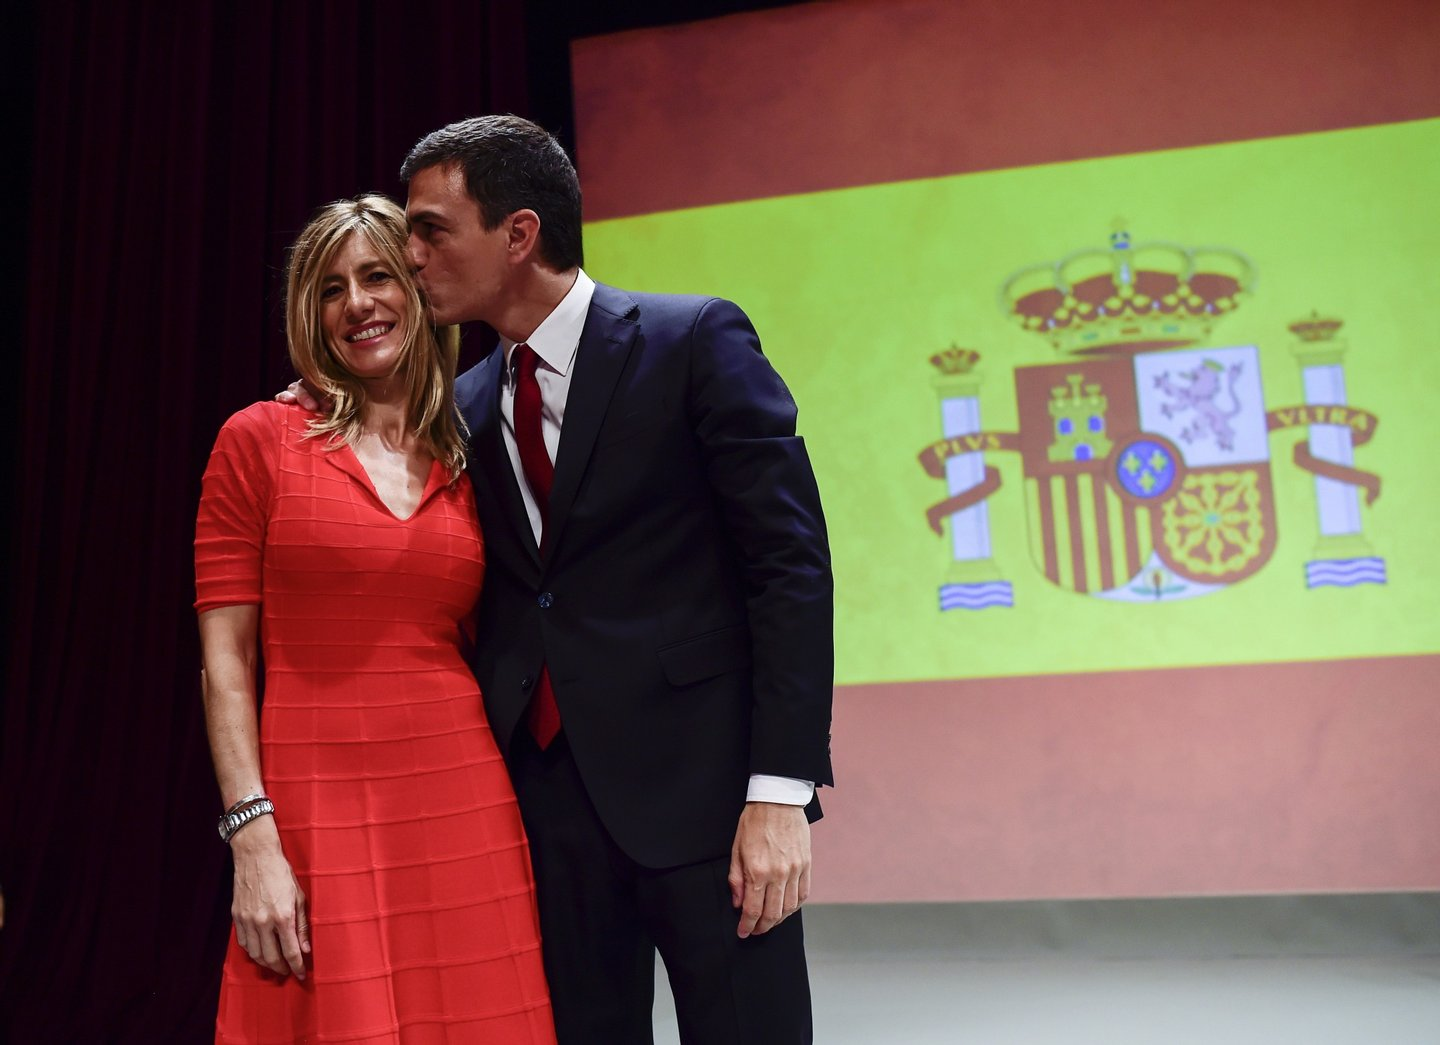 Secretary general of Spanish Socialist Party (PSOE) Pedro Sanchez (R) kisses his wife Begona Fernandez after delivering a speech during his official presentation as PSOE candidate for next general elections, at the Price Circus in Madrid on June 21, 2015. AFP PHOTO/ DANI POZO (Photo credit should read DANI POZO/AFP/Getty Images)